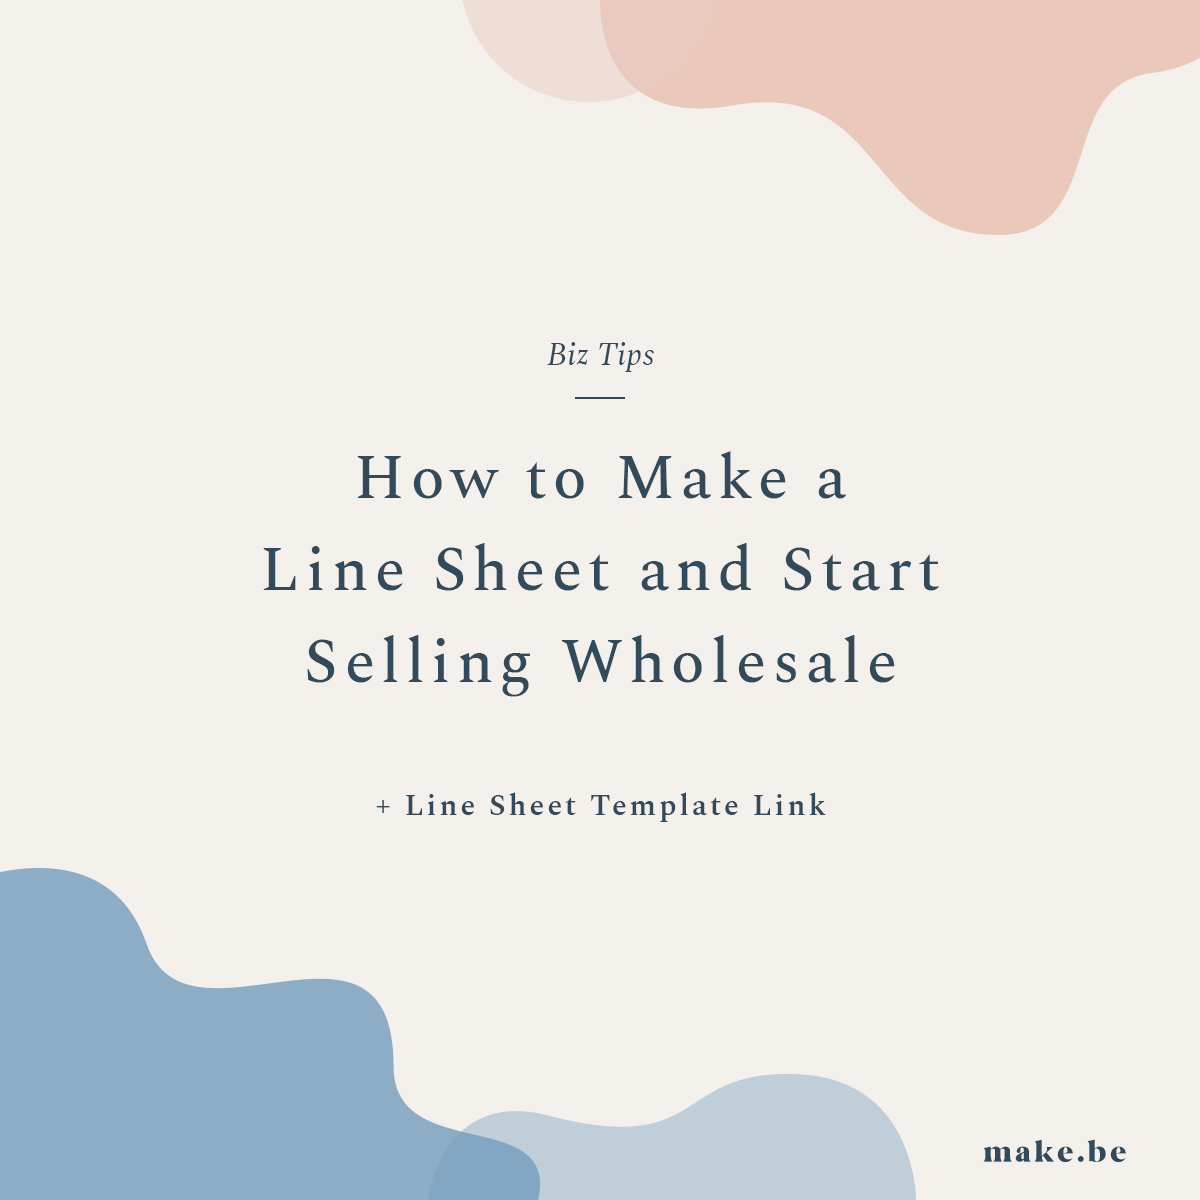 How-to-Make-a-Line-Sheet-MakeBe-.jpg